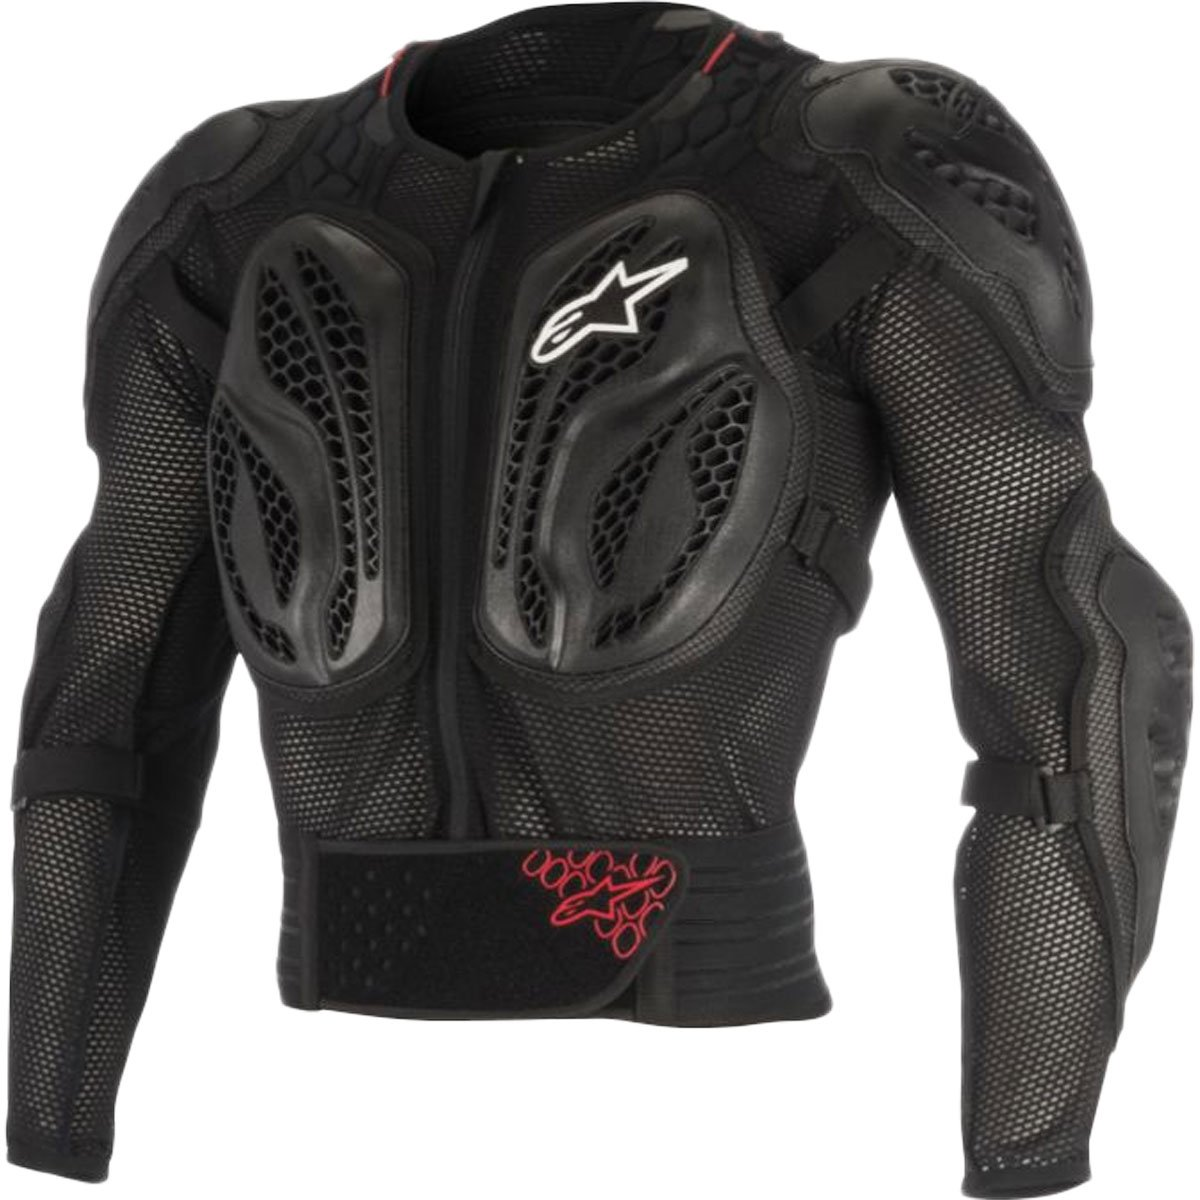 Alpinestars Bionic Action Jacket Men's Off-Road Body Armor - Black/Red / 2X-Large